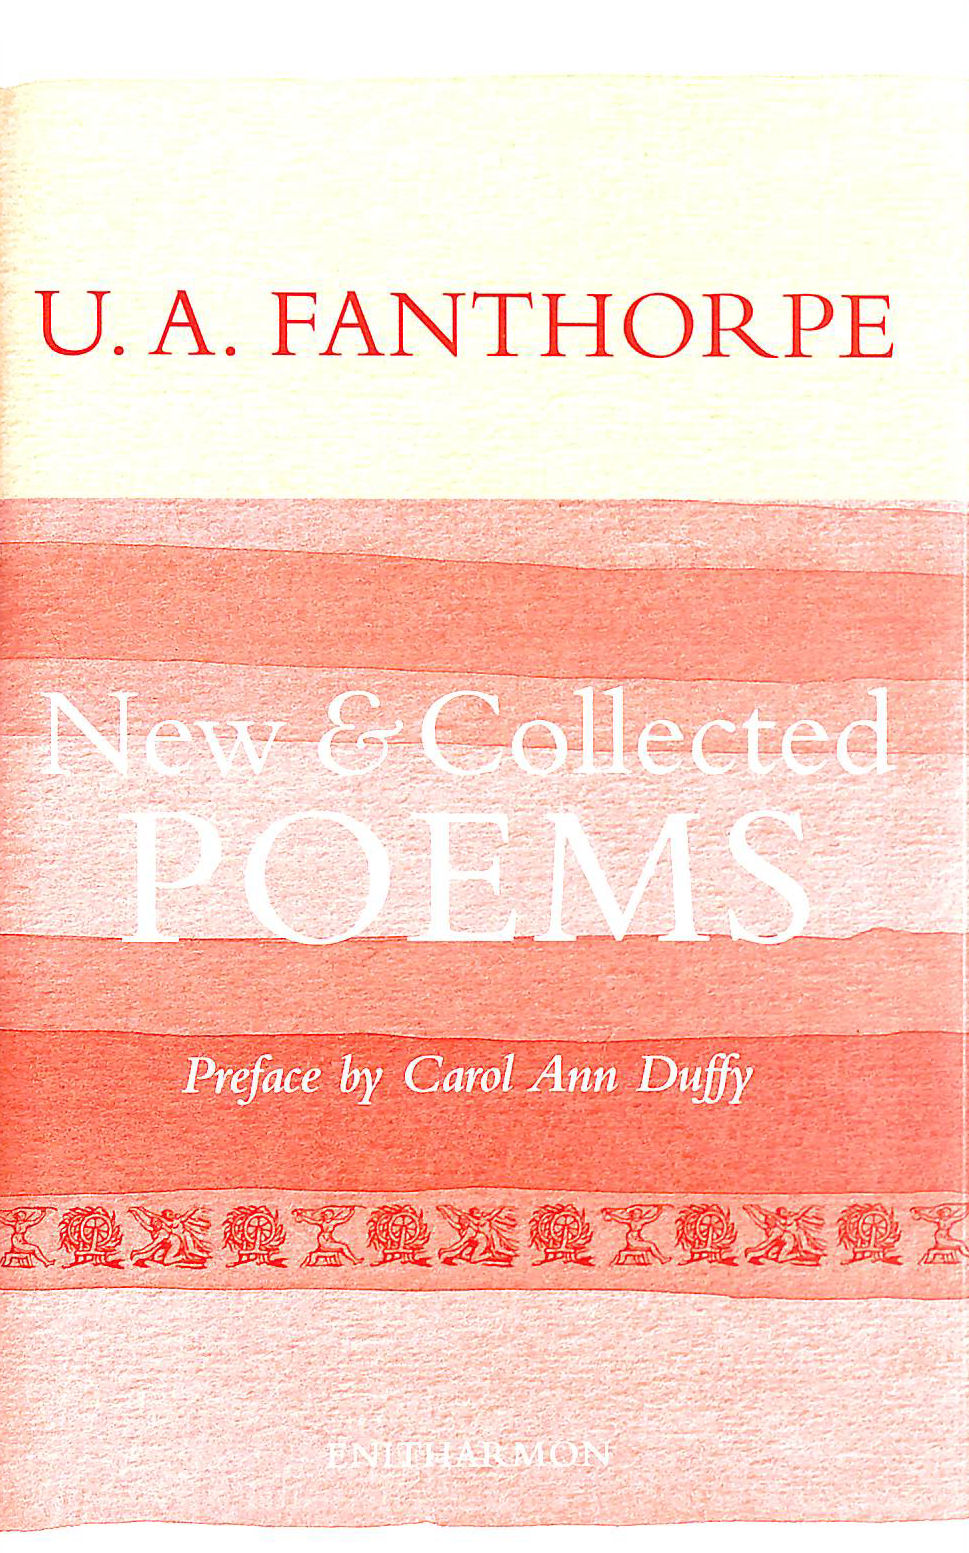 Image for New and Collected Poems